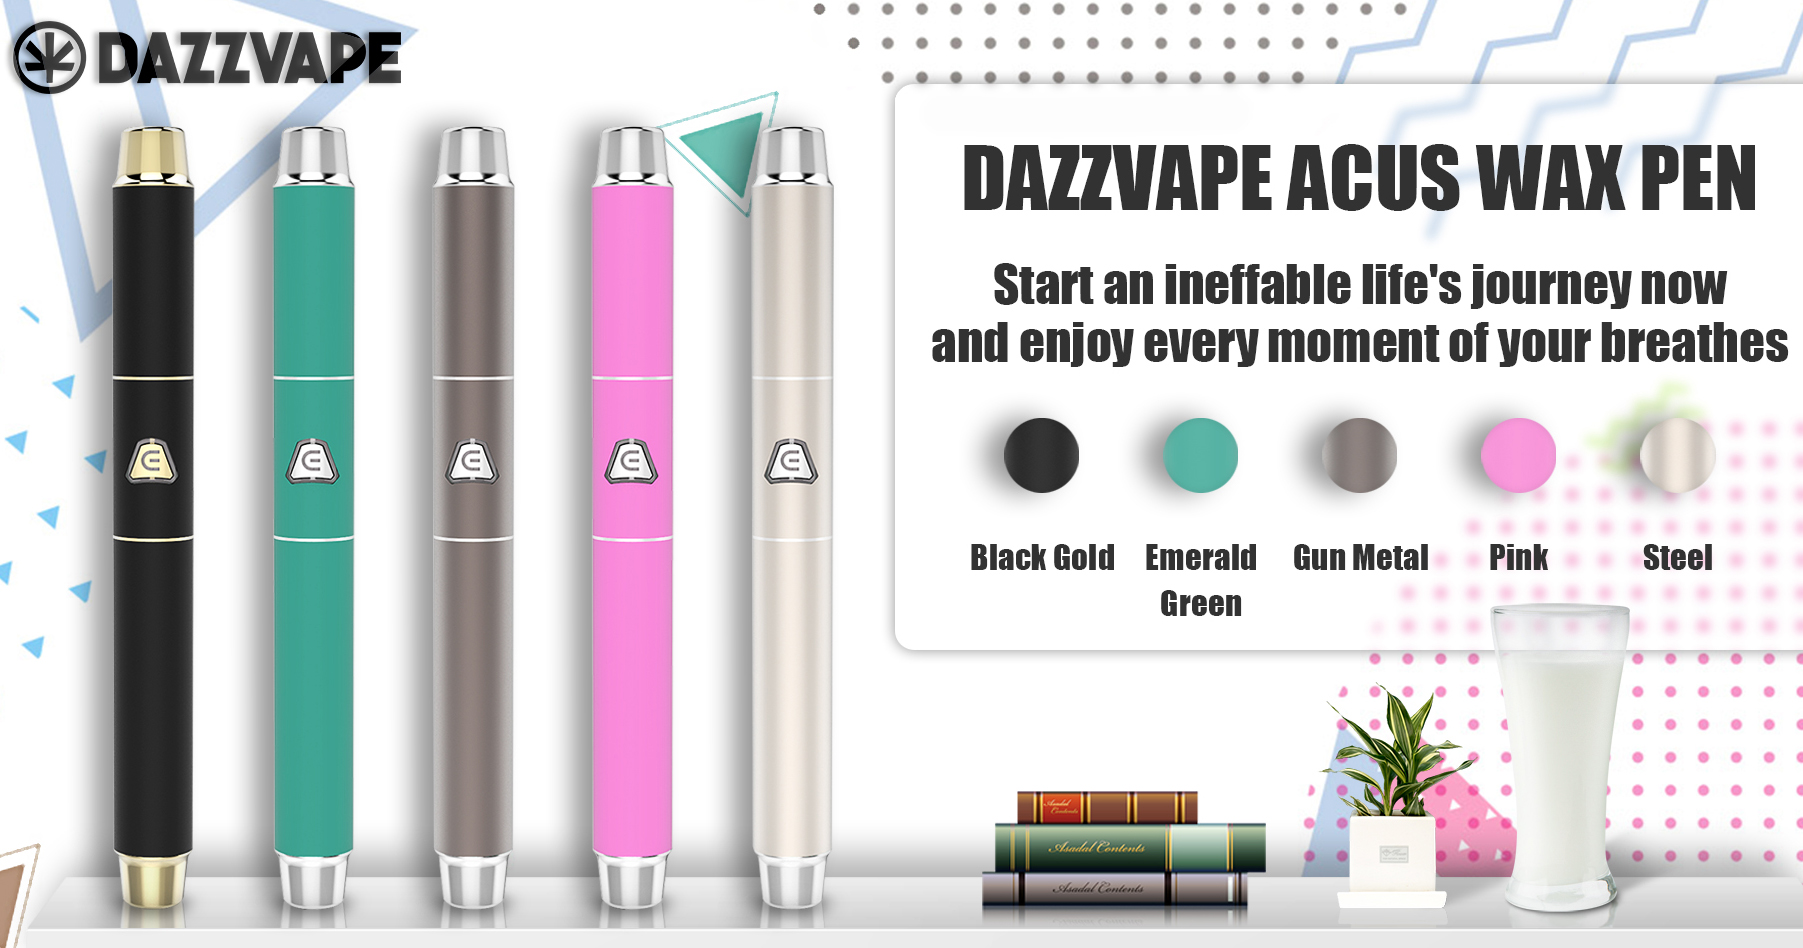 Dazzvape Acus Wax Pen Vaporizer Features 04